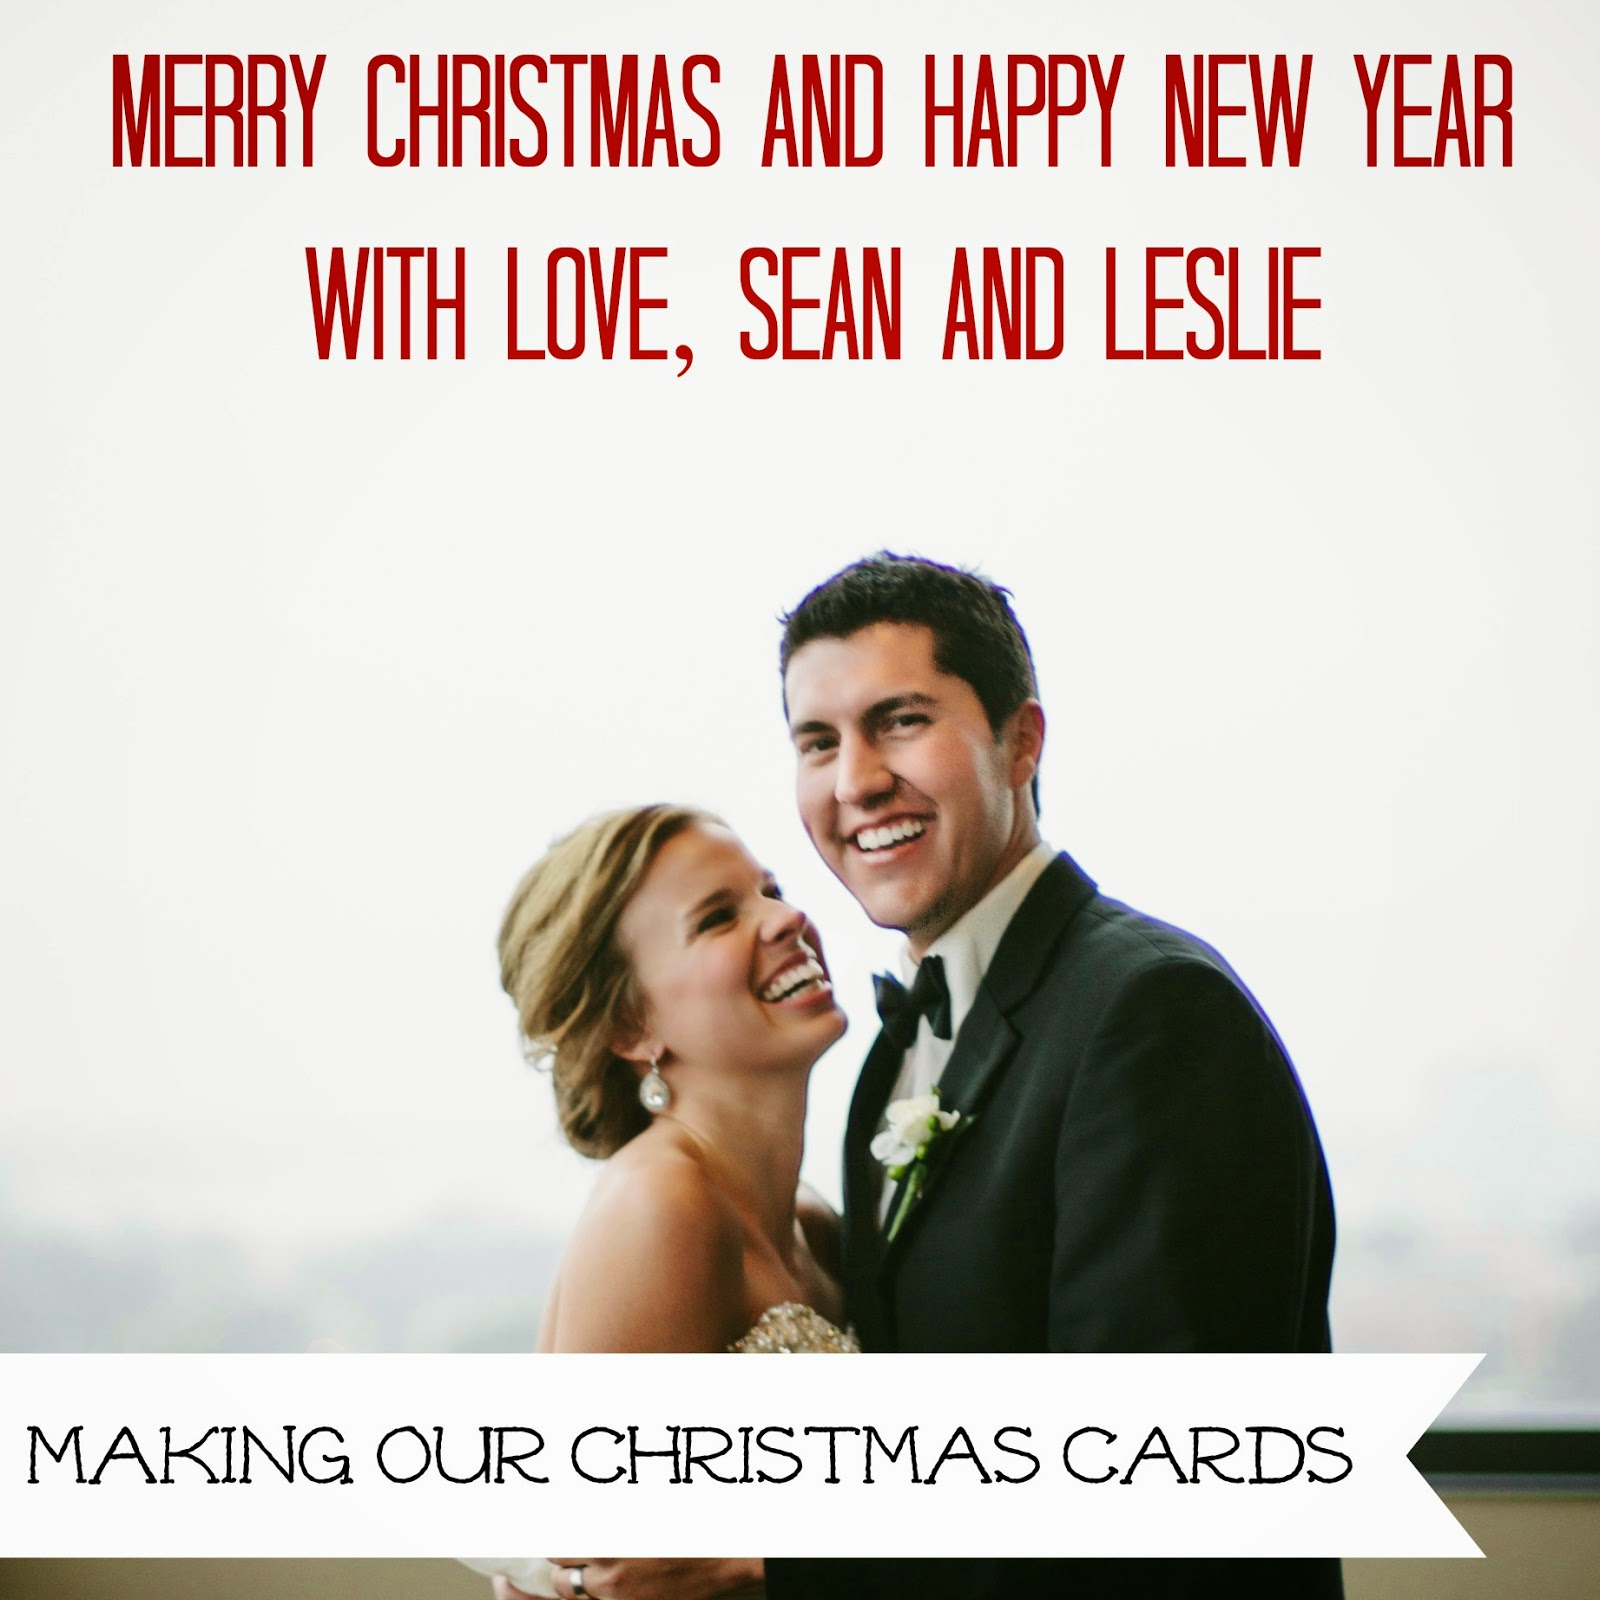 http://wonderfullymadebyleslie.blogspot.com/2013/12/our-christmas-cards.html